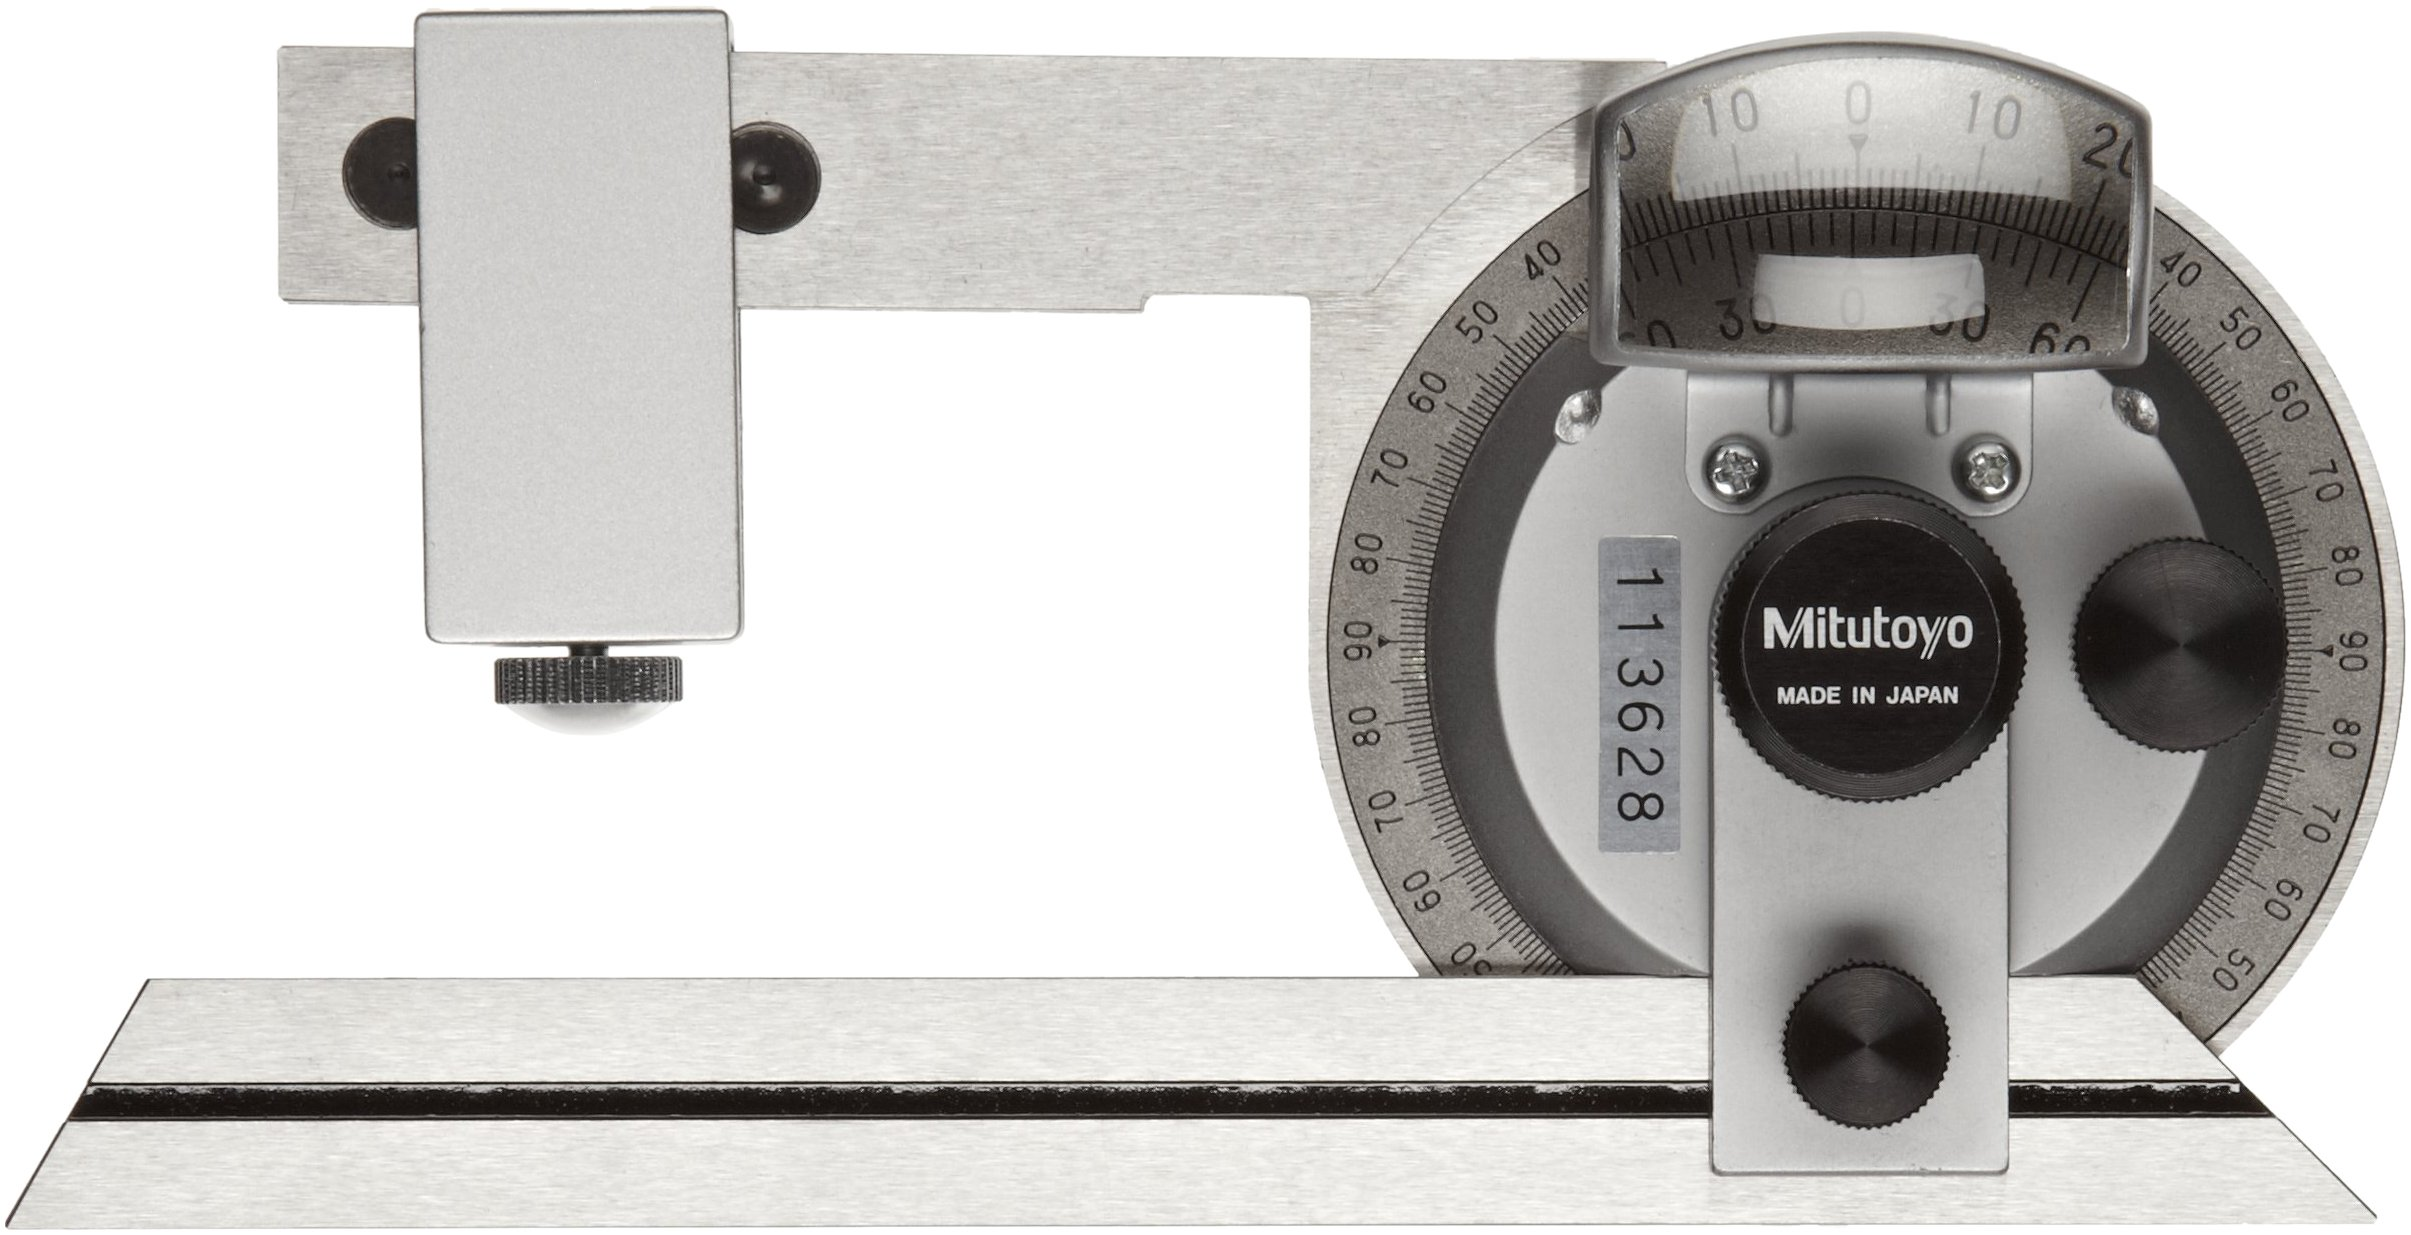 Mitutoyo 187-904, Universal Bevel Protractor, 6'' Blade, 5 minute Vernier Resolution by Mitutoyo